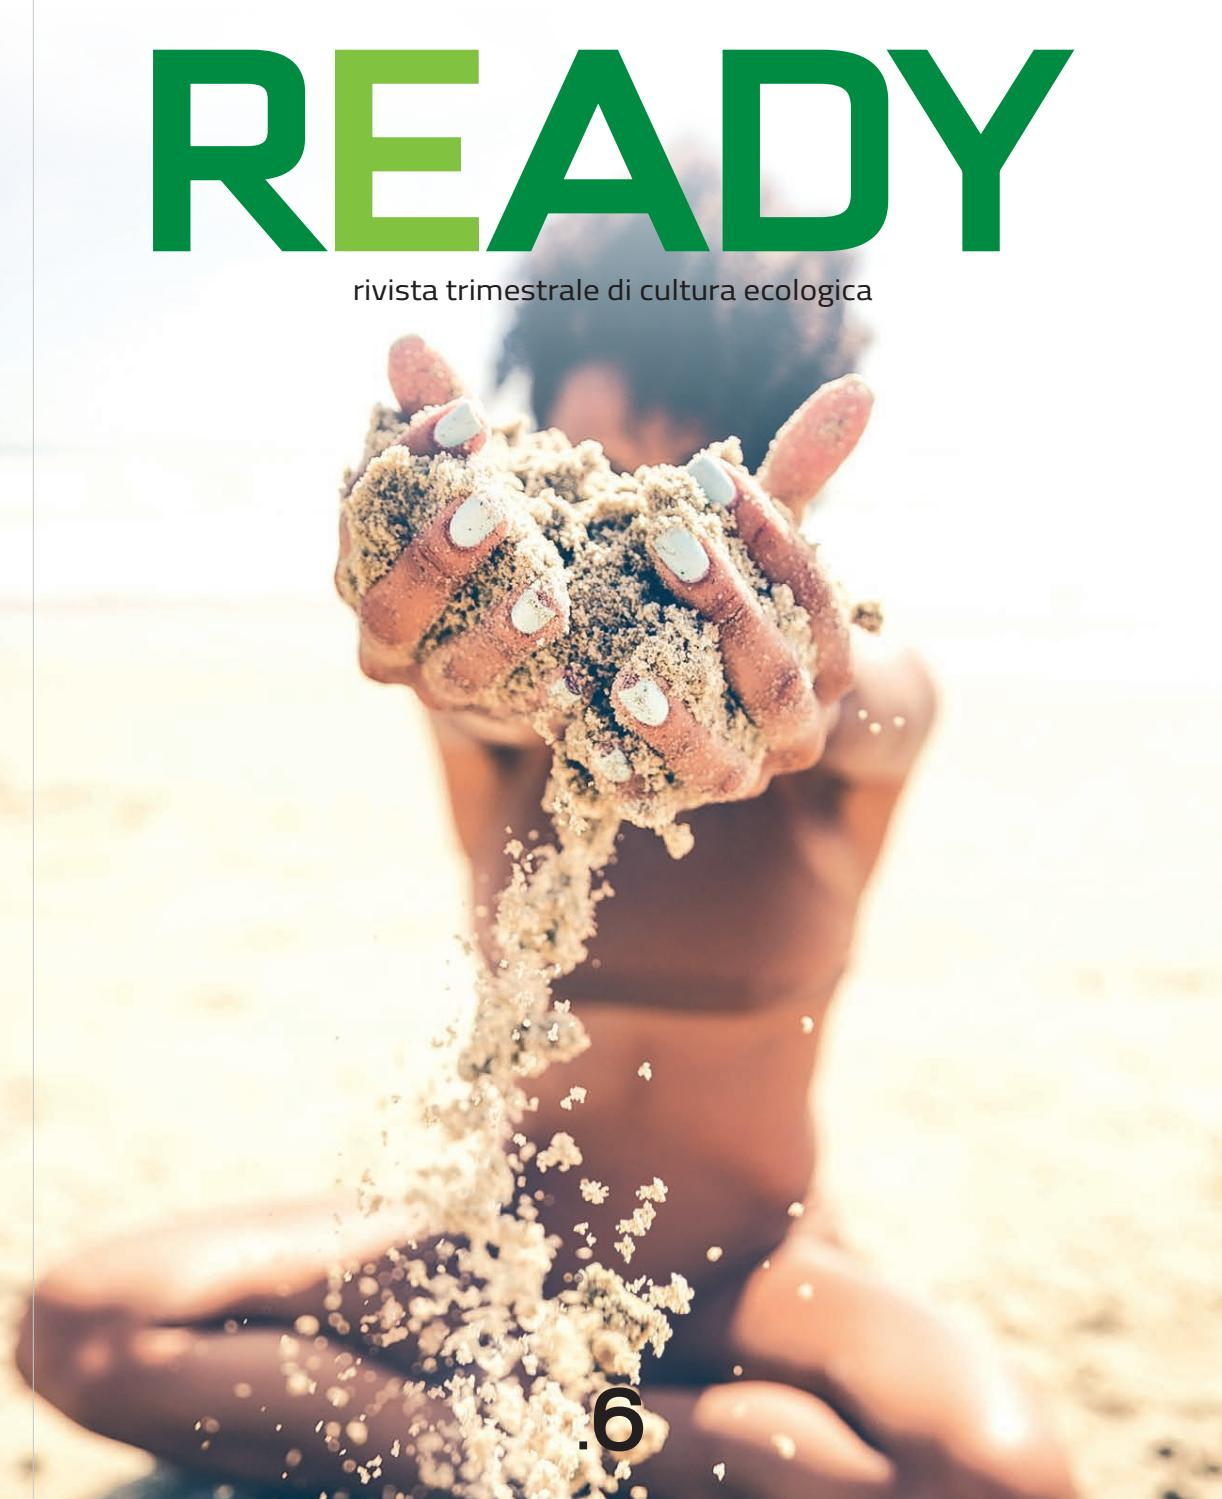 Ready Culture Ecology By Paoly Issuu